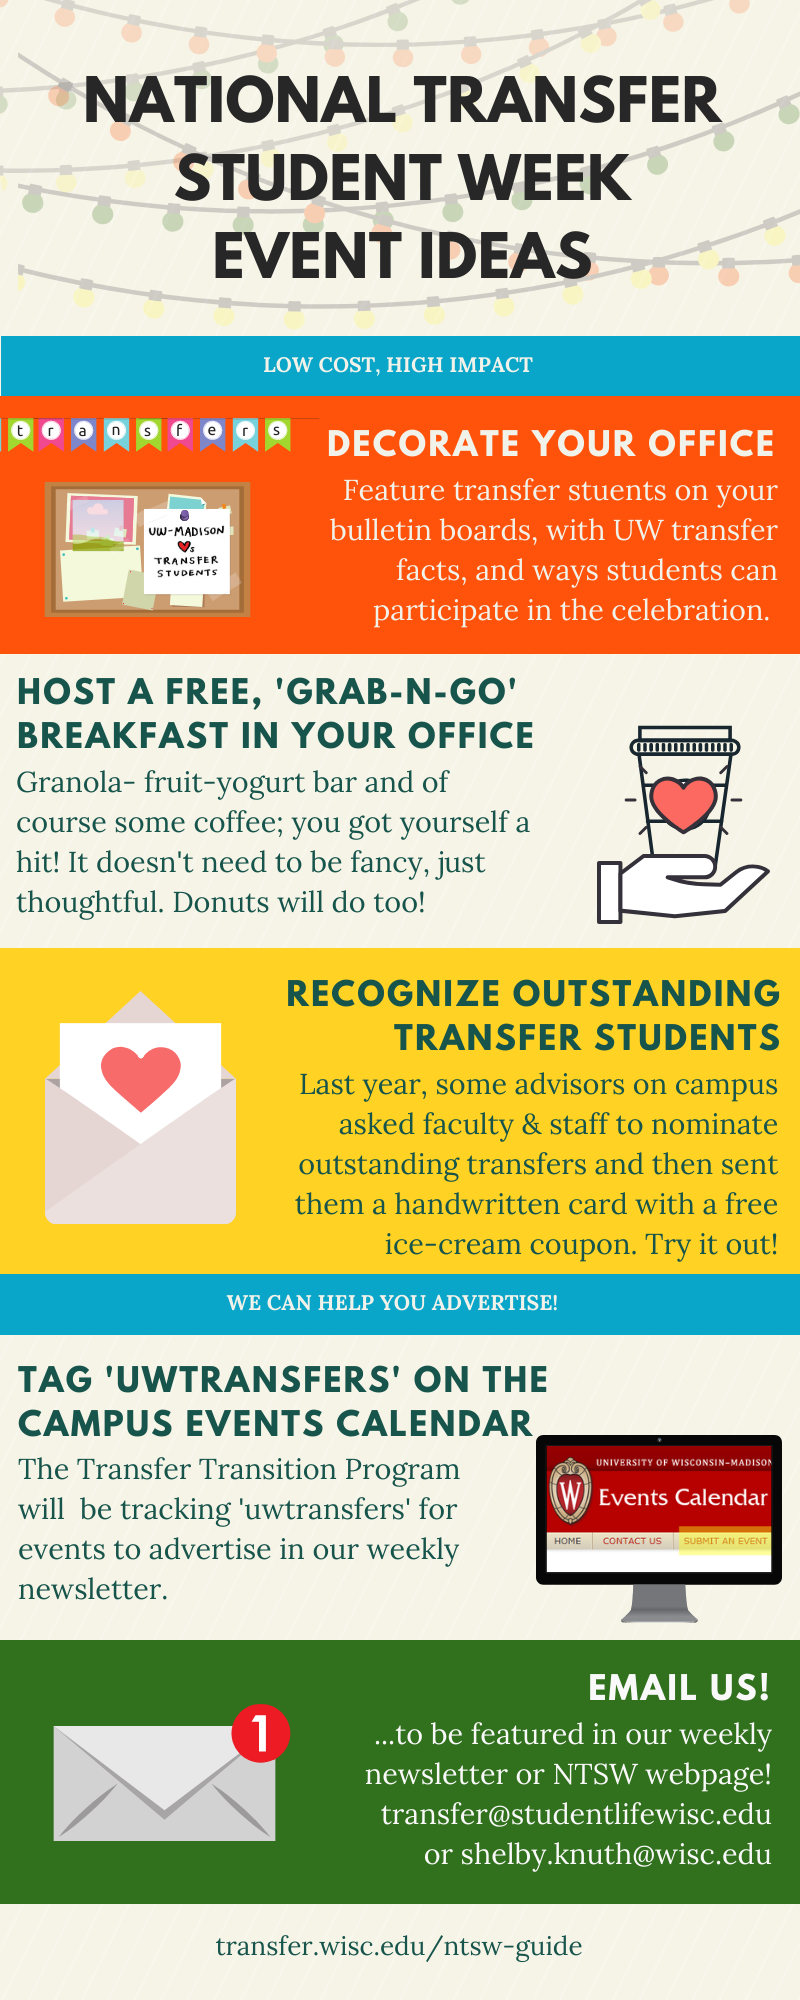 The colorful graphic lists several suggestions for NTSW events, such as decorate your office, host a breakfast, and recognize outstanding transfer students.